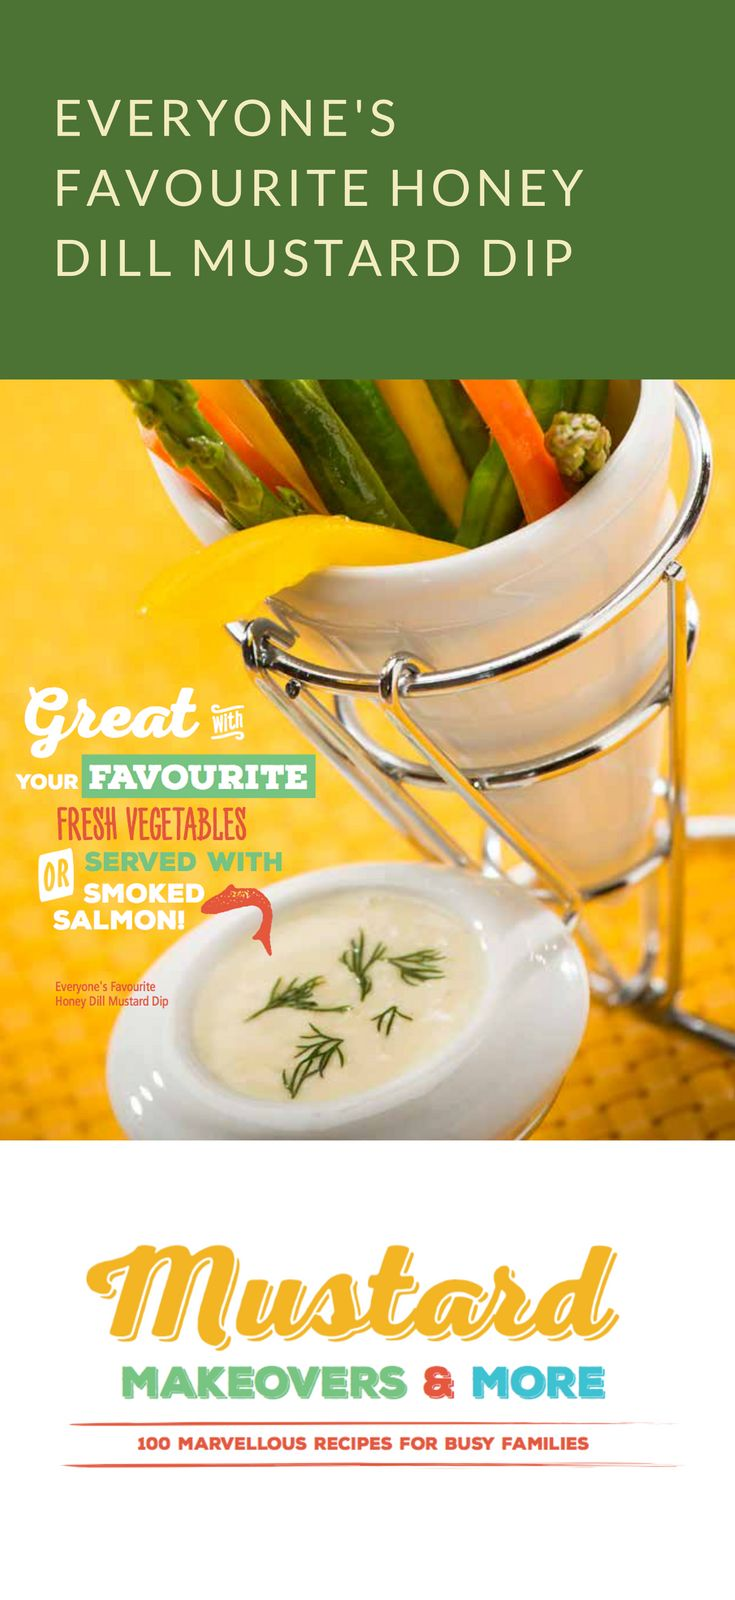 Everyone's Favourite Honey Dill Mustard Dip from Mustard Makeovers & More